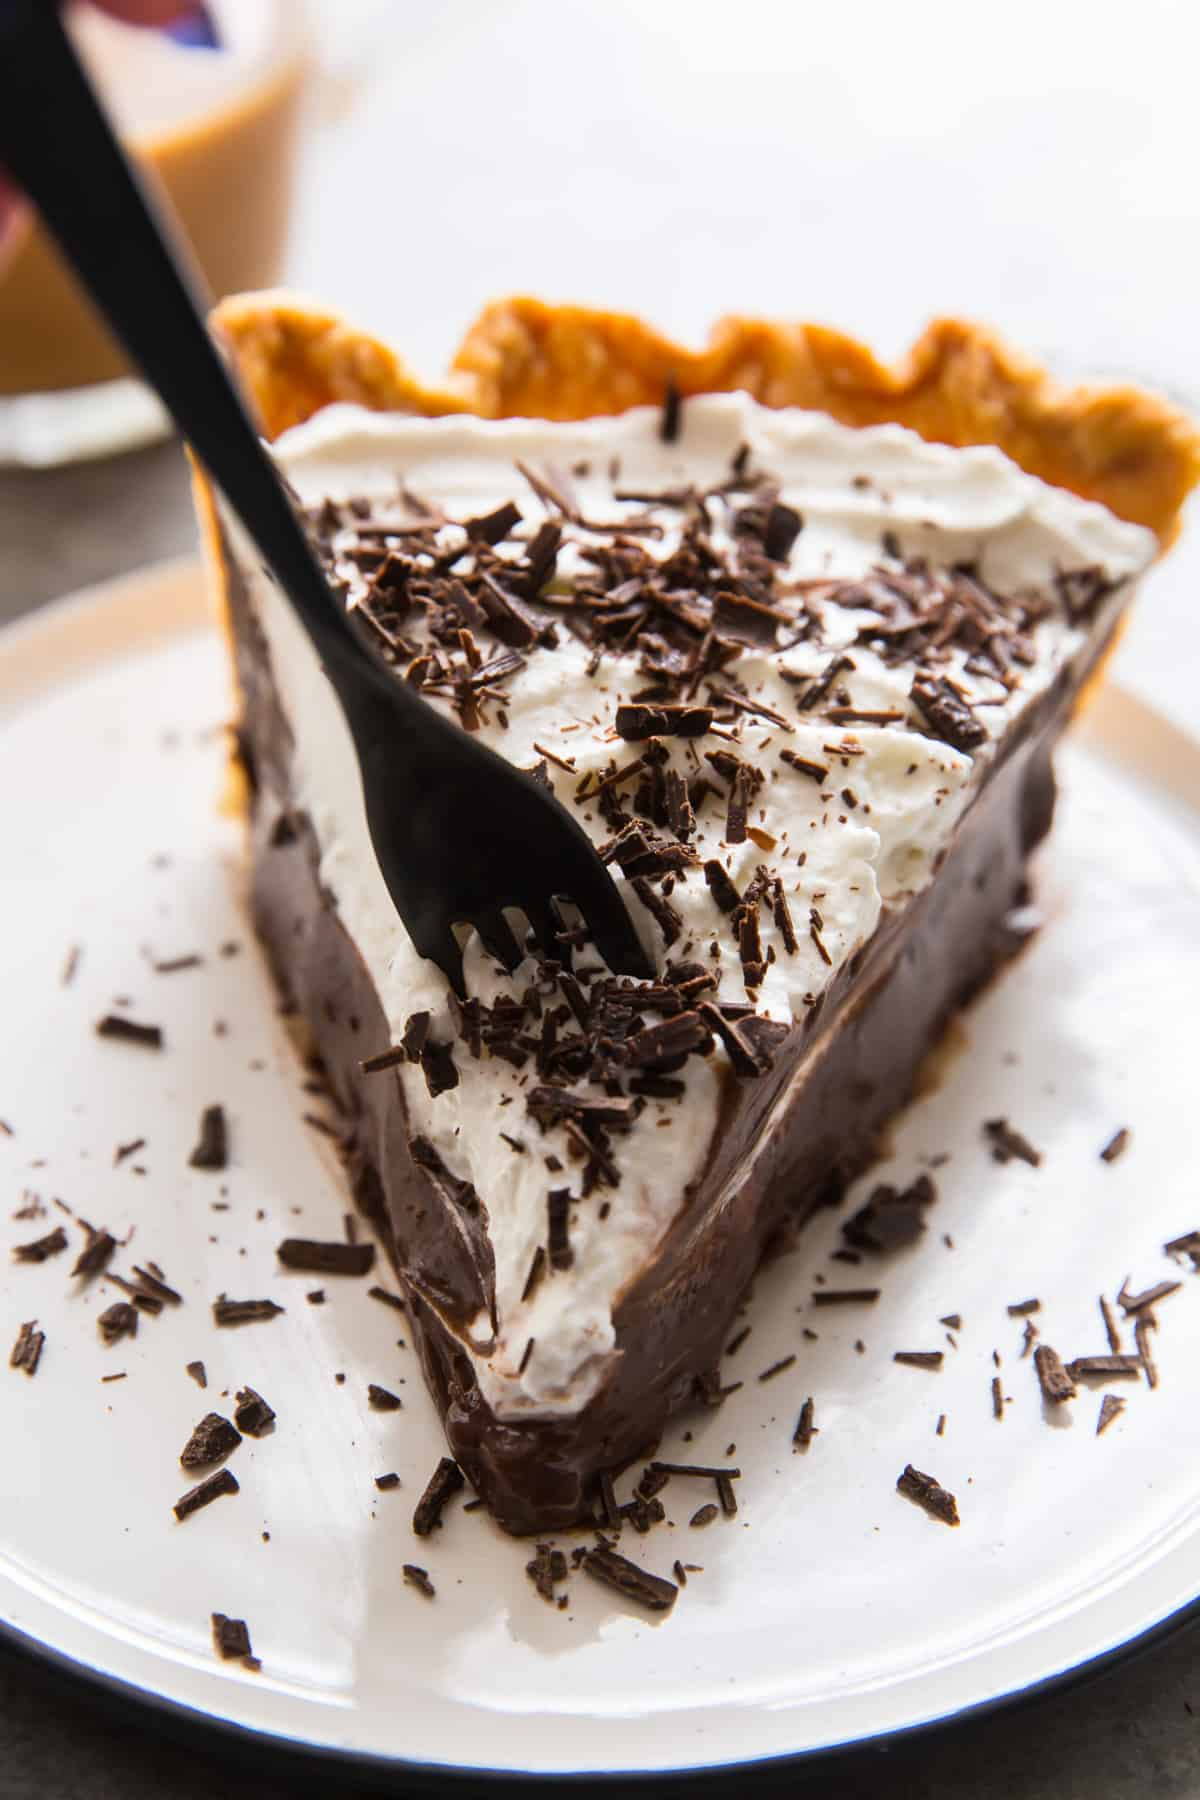 A fork breaks into a slice of chocolate cream pie.